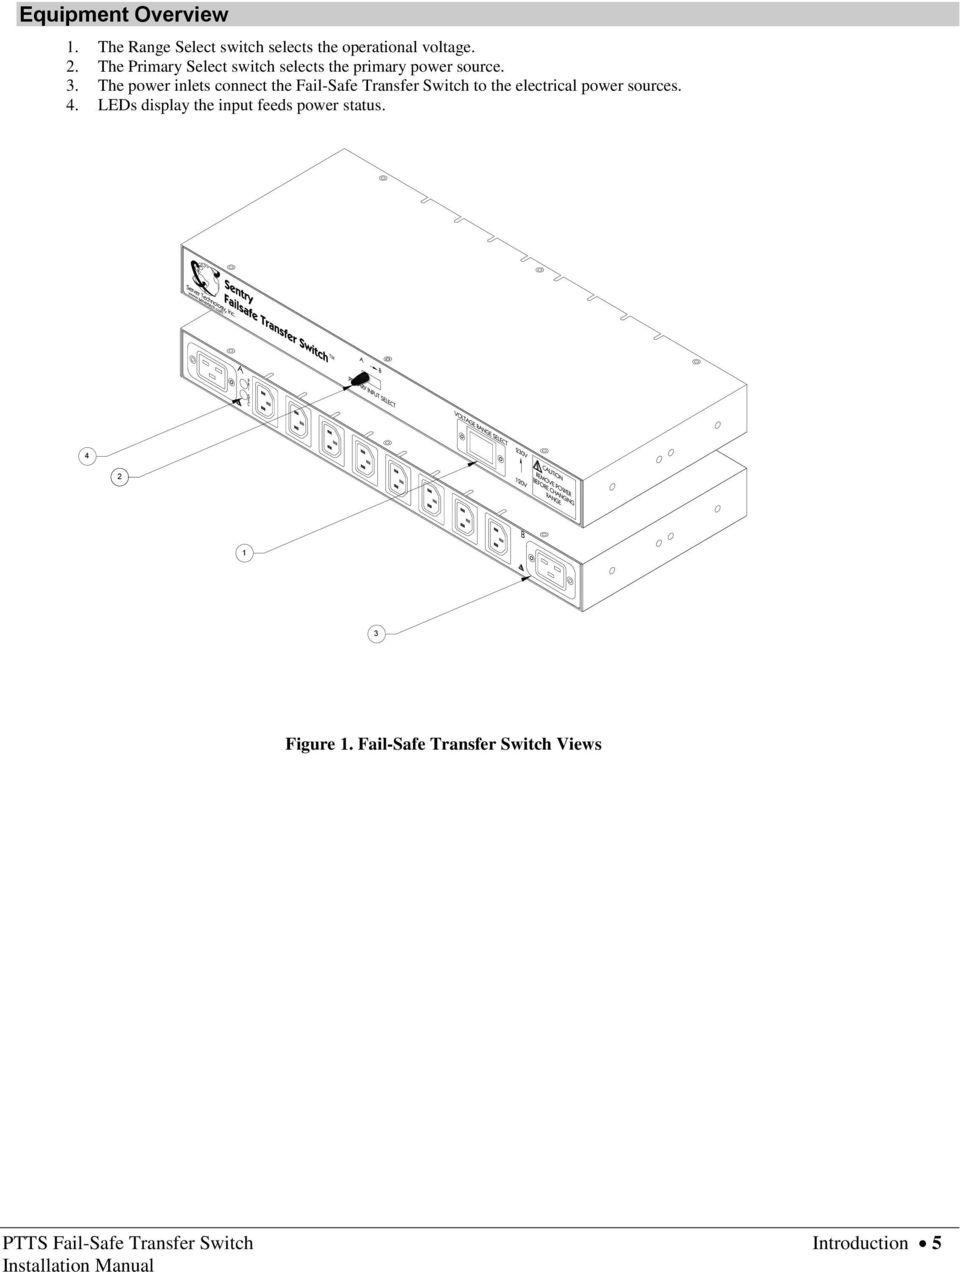 Fail Safe Transfer Switch Installation Manual Pdf How To Install A The Power Inlets Connect Electrical Sources